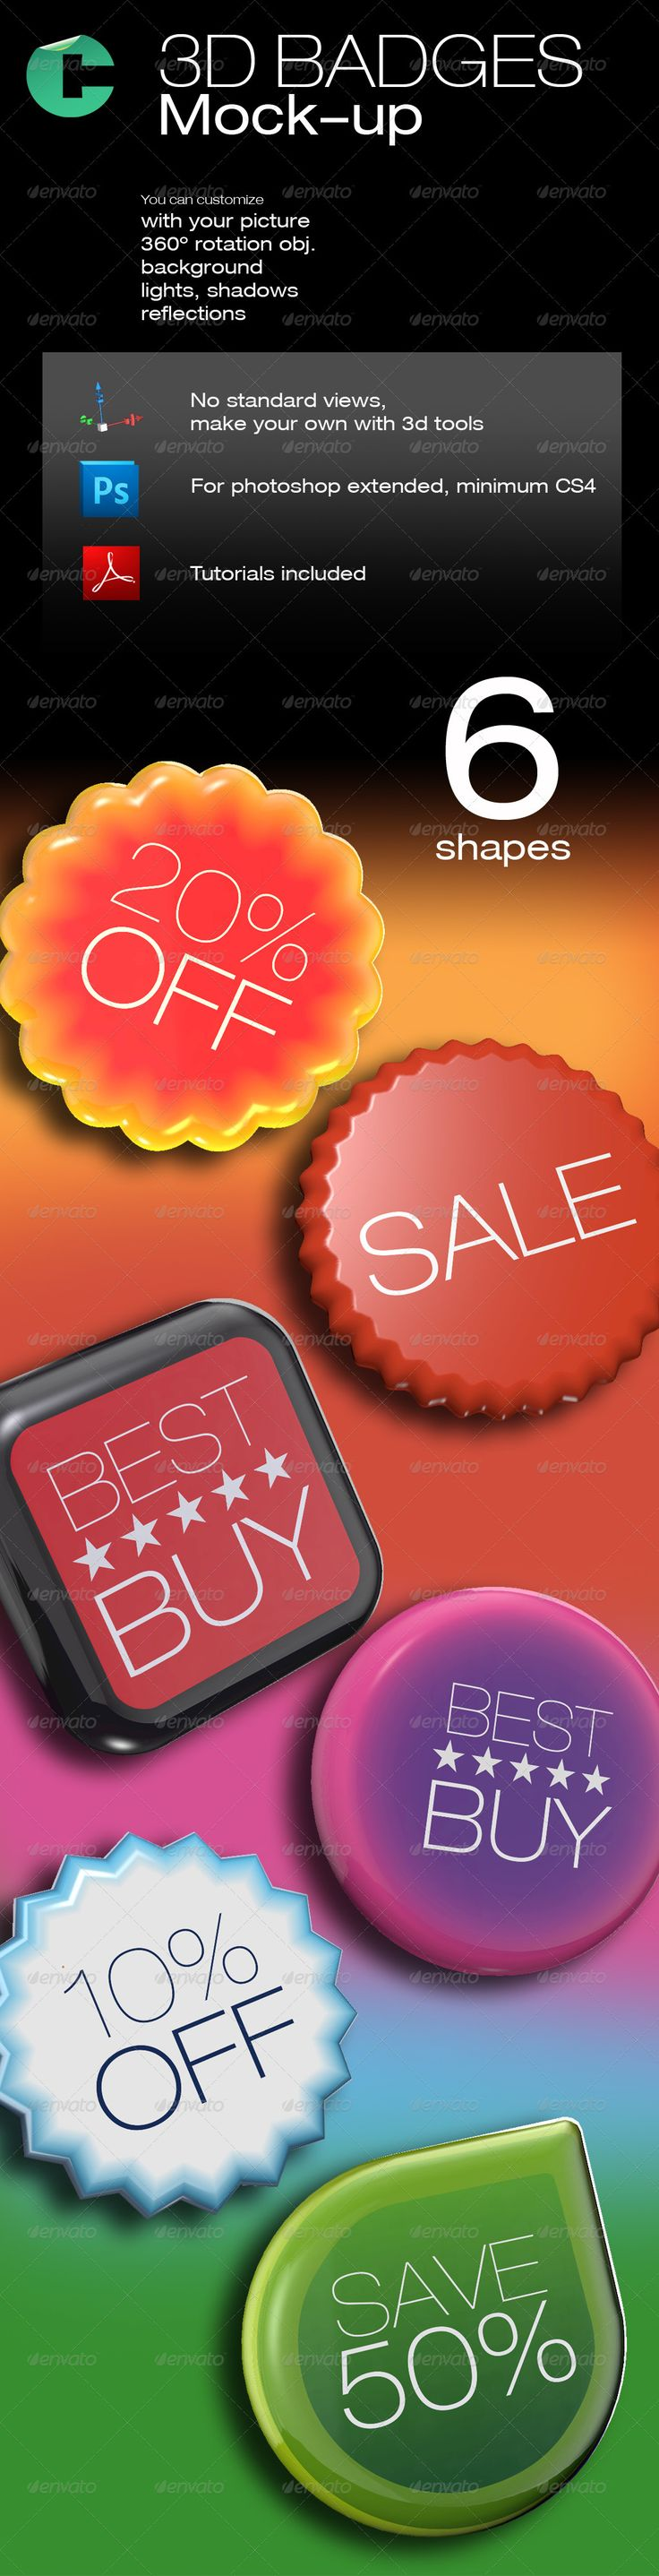 3D Object - Badges and Sale Tags  #GraphicRiver         This product is compatible with Adobe Photoshop CS4 Extended and CS5 Extended   This badges are great for a website, promotion and advertising your product. with the 3d tools allow to customize with unlimited views and angles.   you only need to upload a jpg file at 72dpi with your design, It wraps automatically, then you can rotate, zoom, roll, the way you want.   Change the camera lens settings. You can even add, remove, edit 3D…